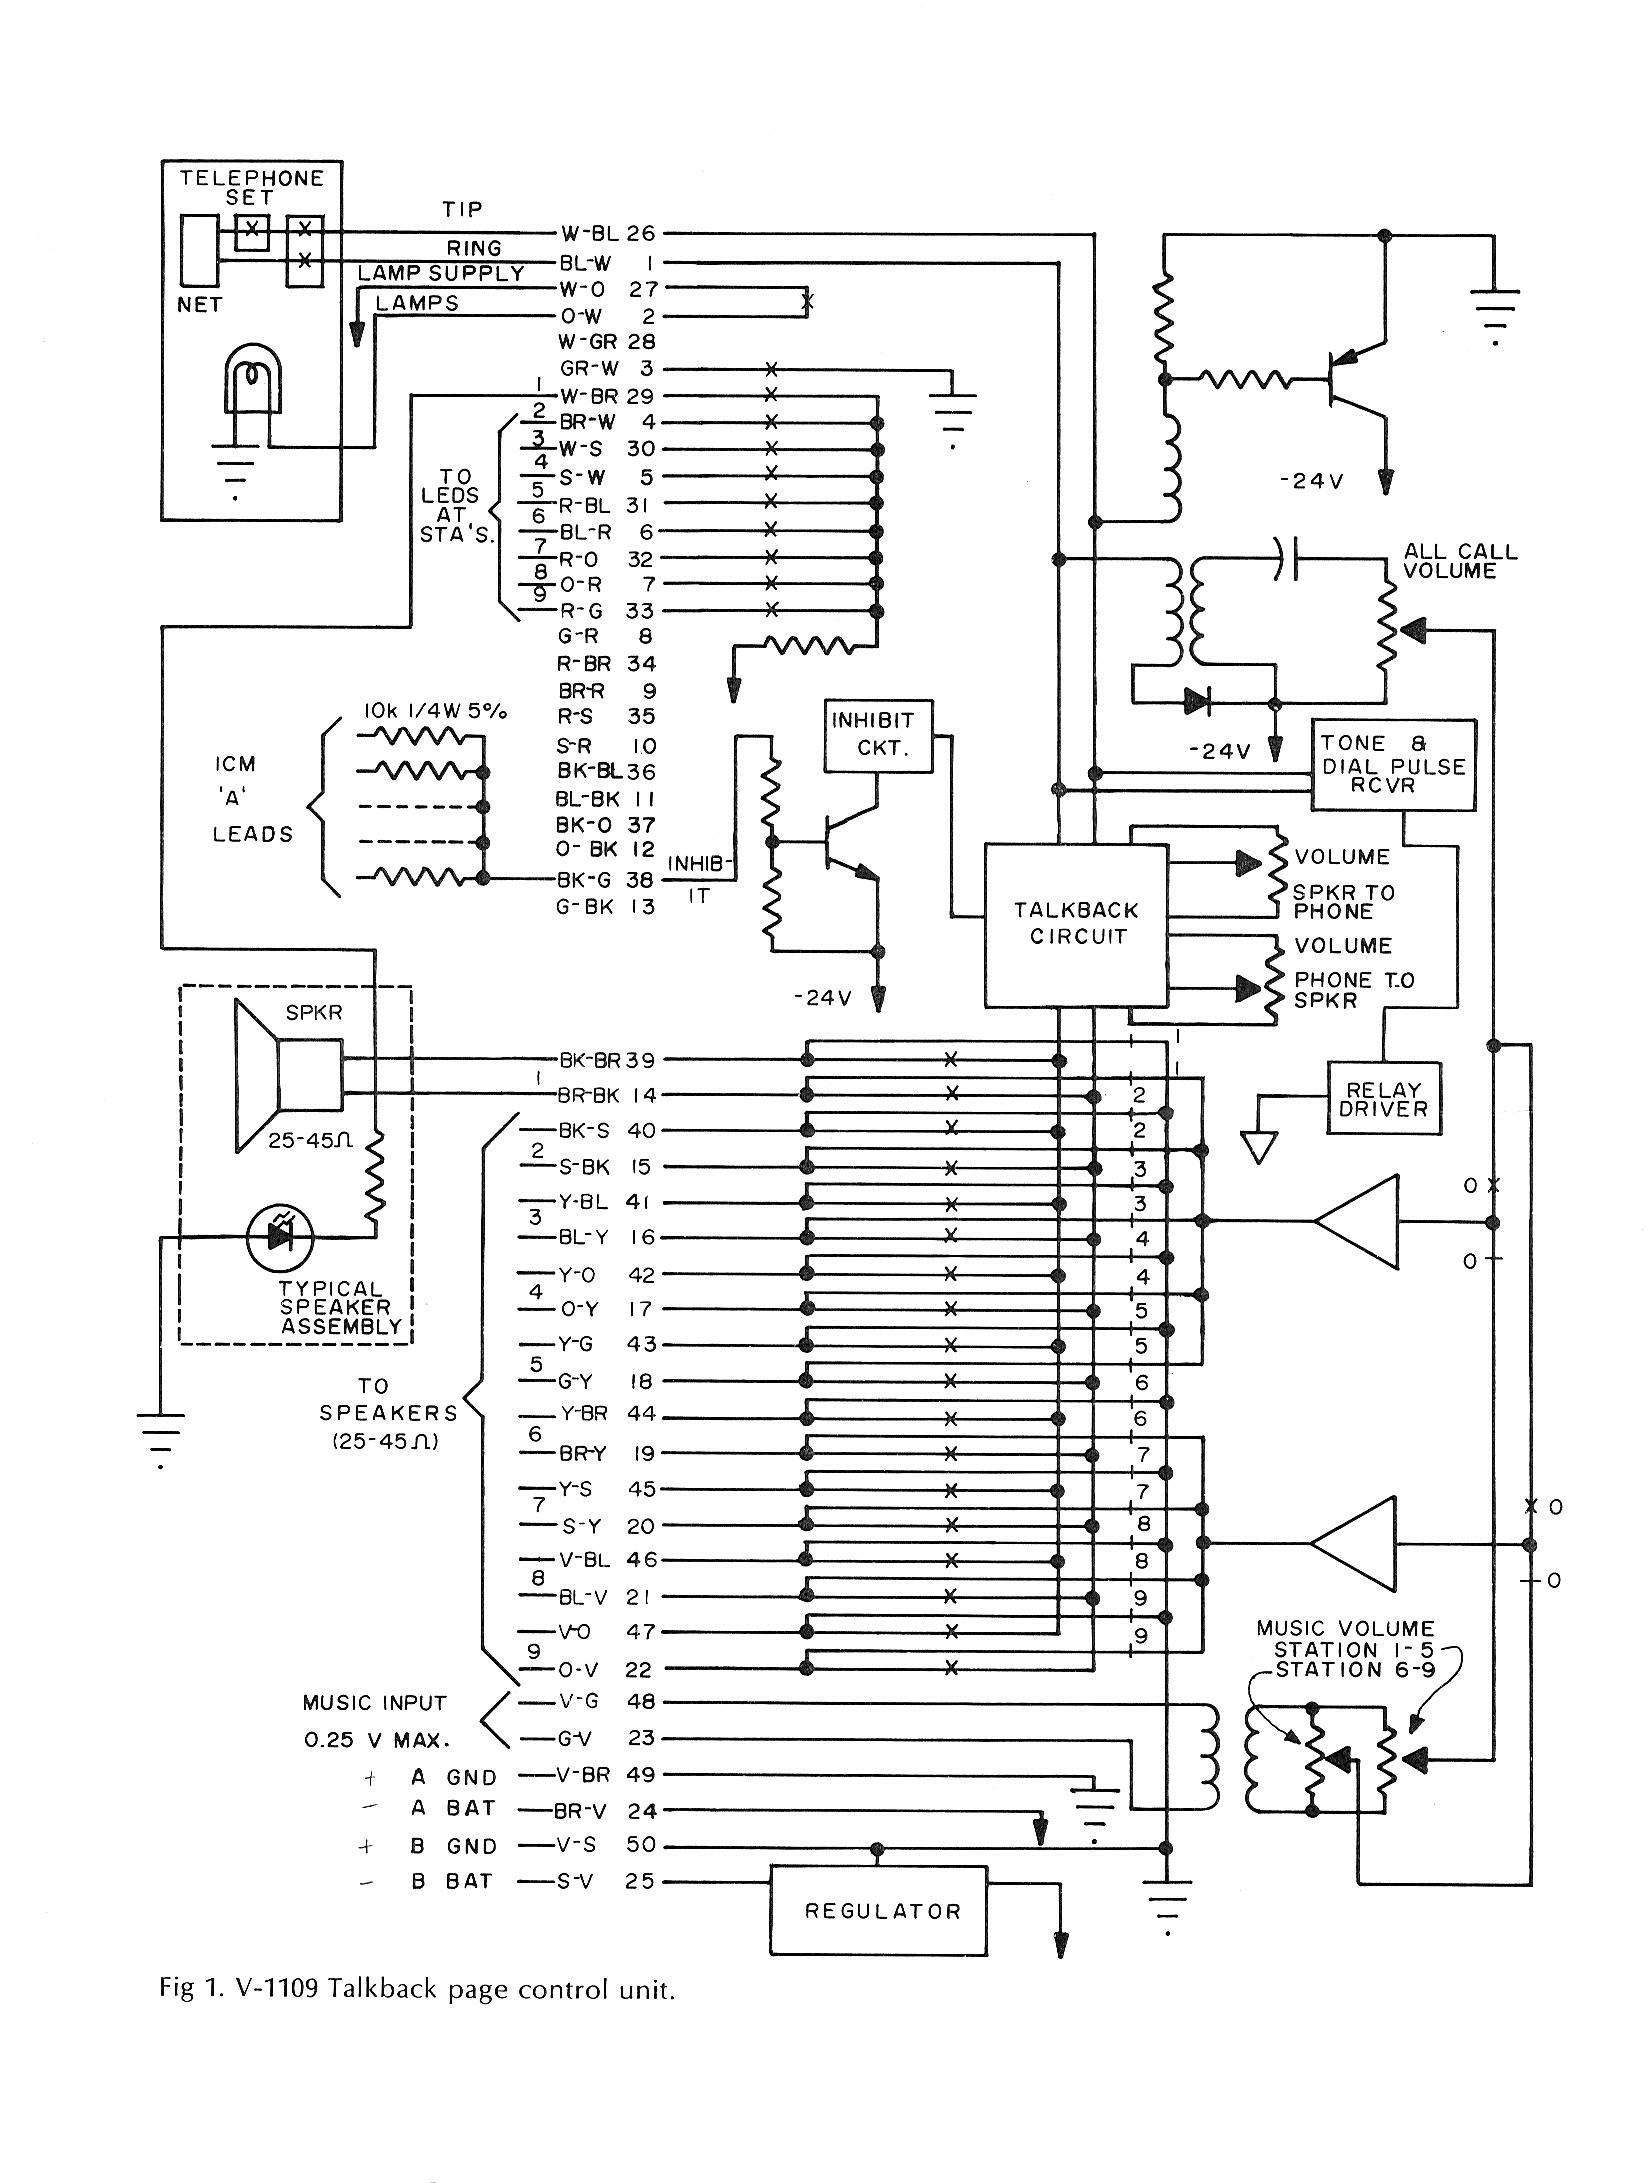 valcom1109 telephone technical references valcom paging horn wiring diagram at crackthecode.co